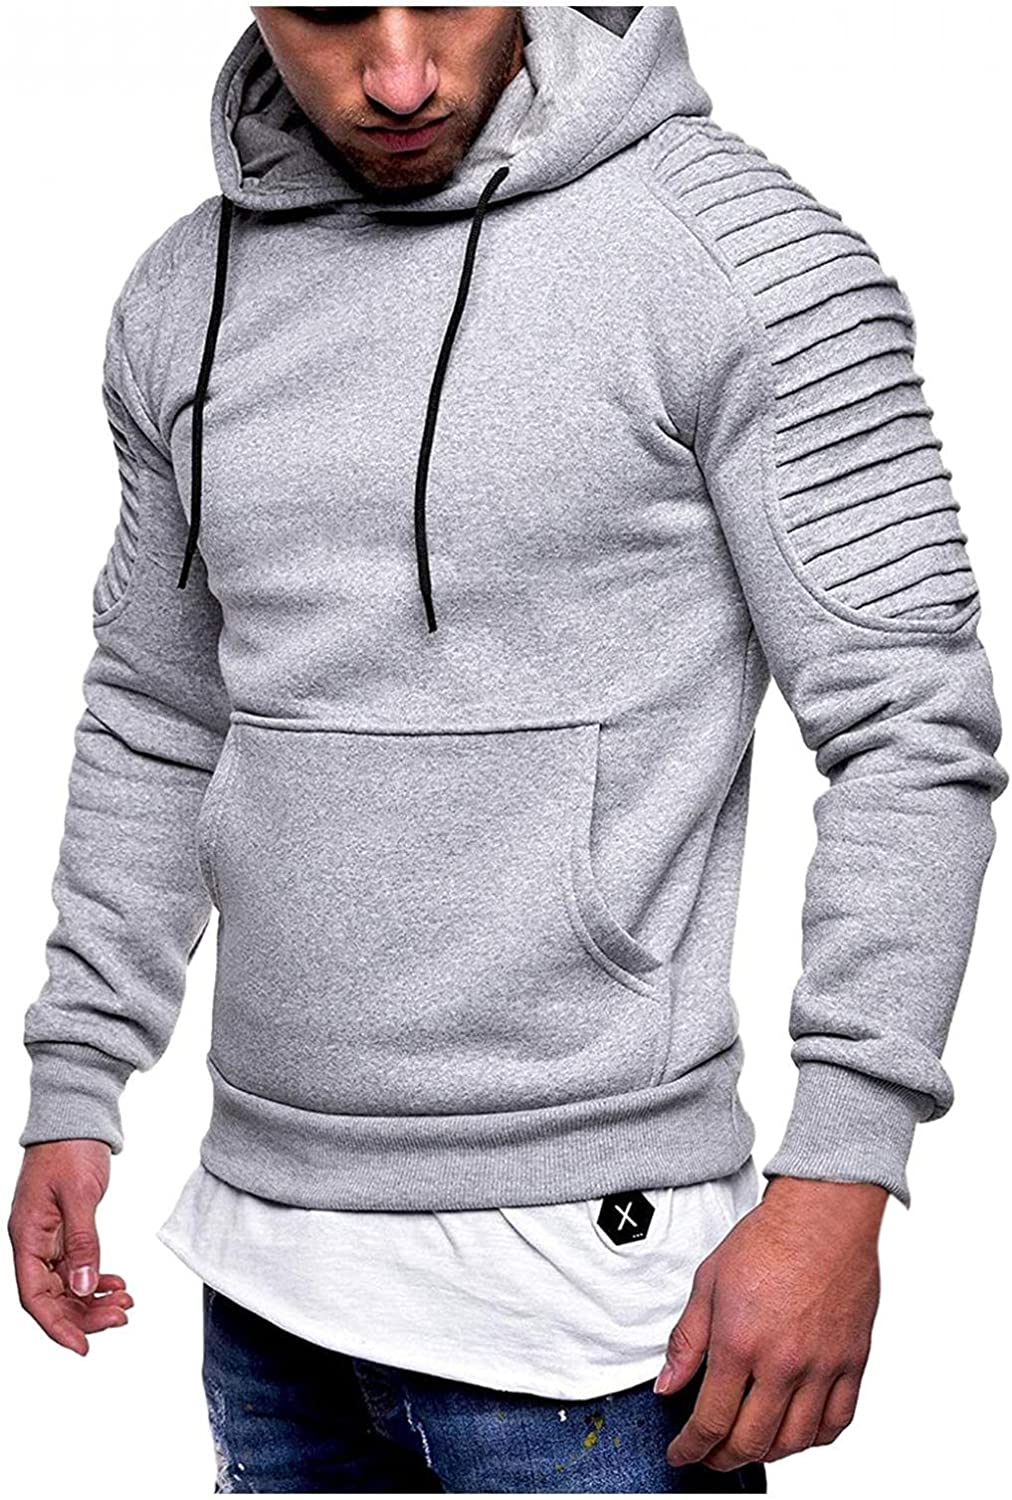 Hoodies for Men Fashion Mens Hoodies Merch Casual Hoodie Pullover Sweatshirt for Men with Pocket Tops